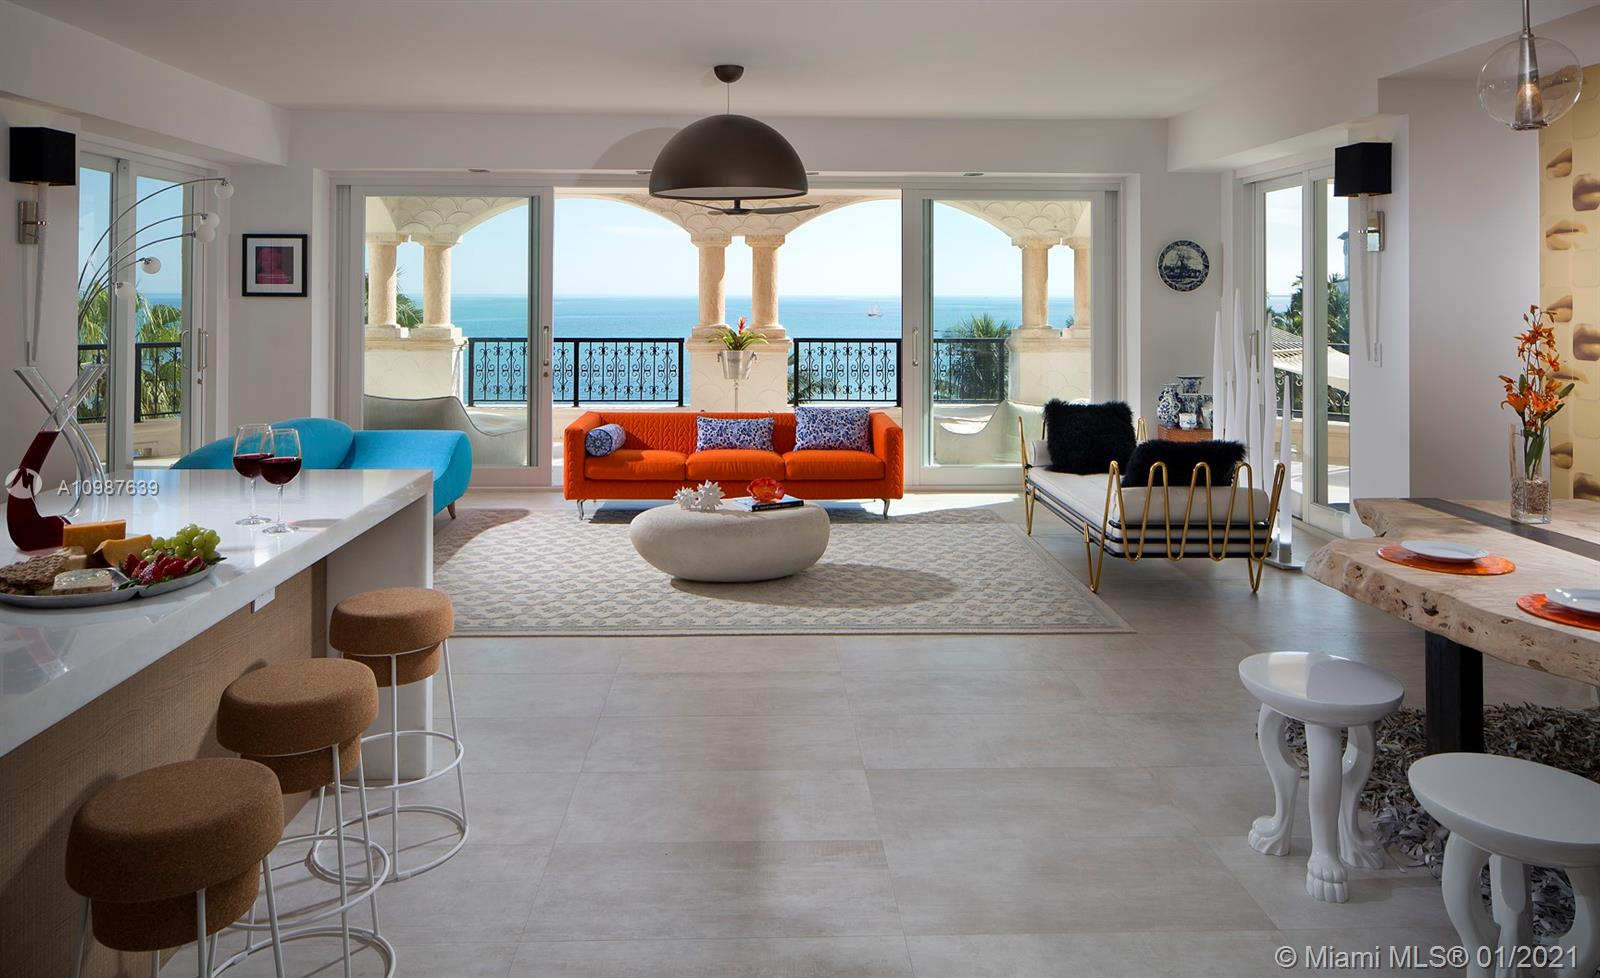 Oceanside #7745 - 7745 Fisher Island Drive #7745, Miami Beach, FL 33109